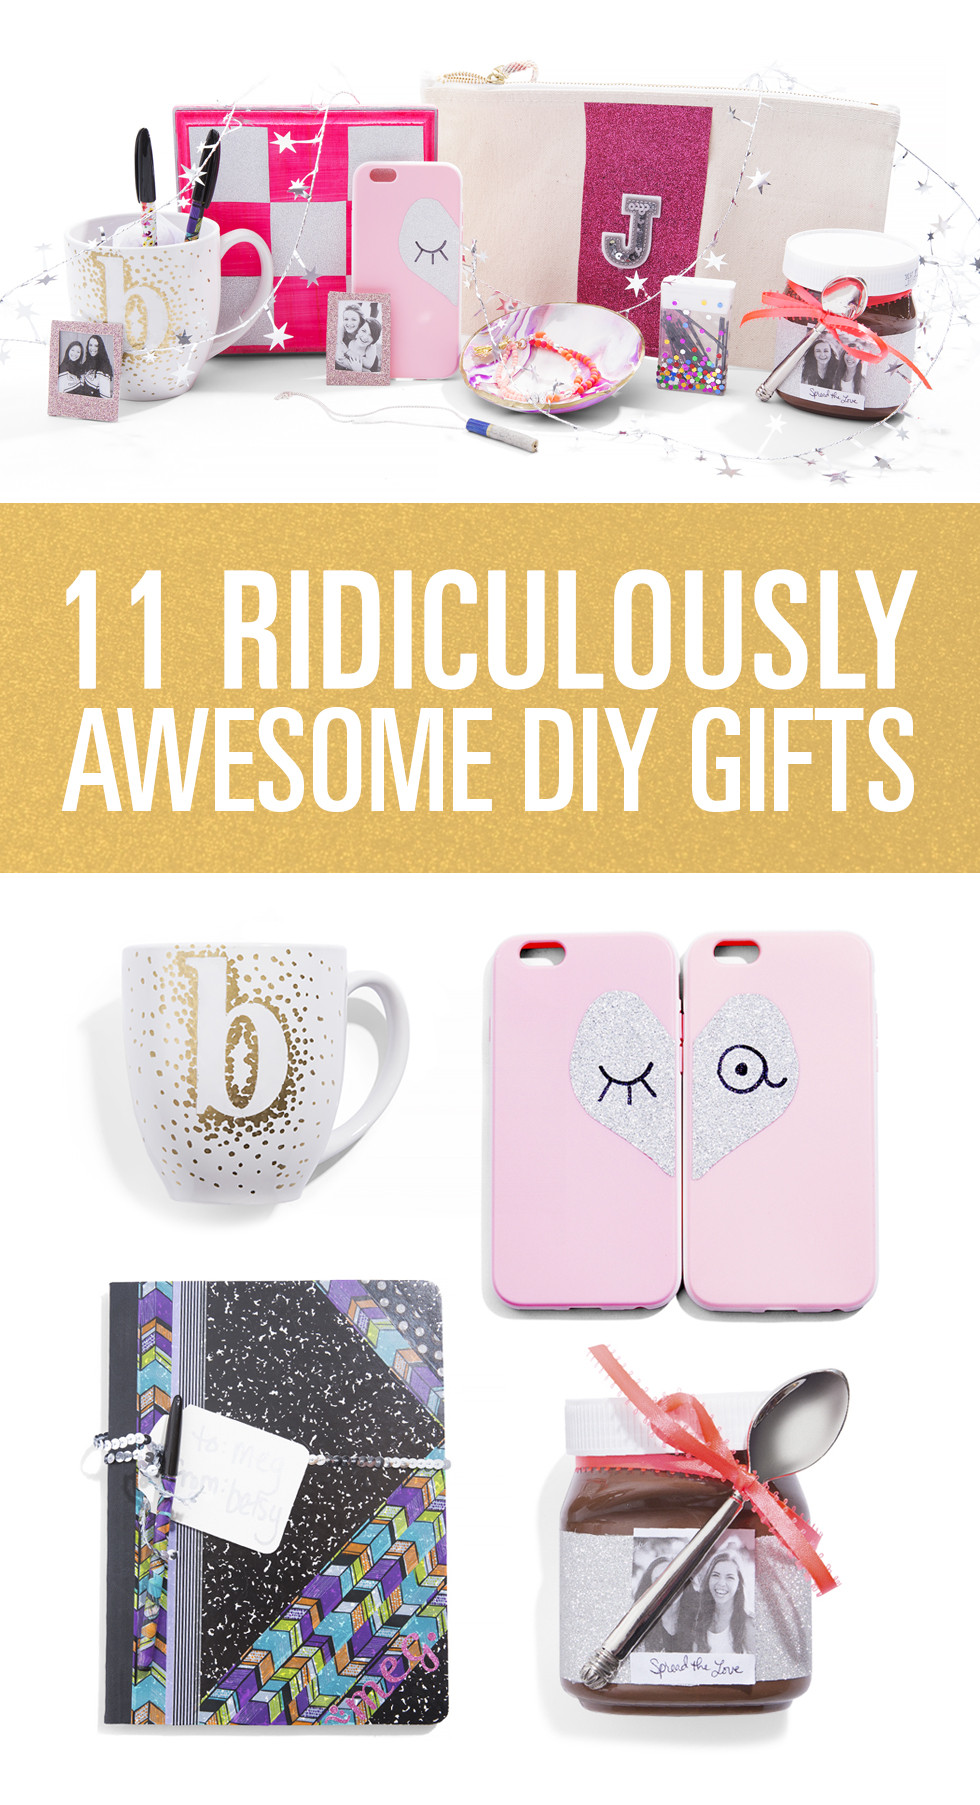 Best Friend Gift Ideas Diy  DIY Gifts For Friends DIY Gifts